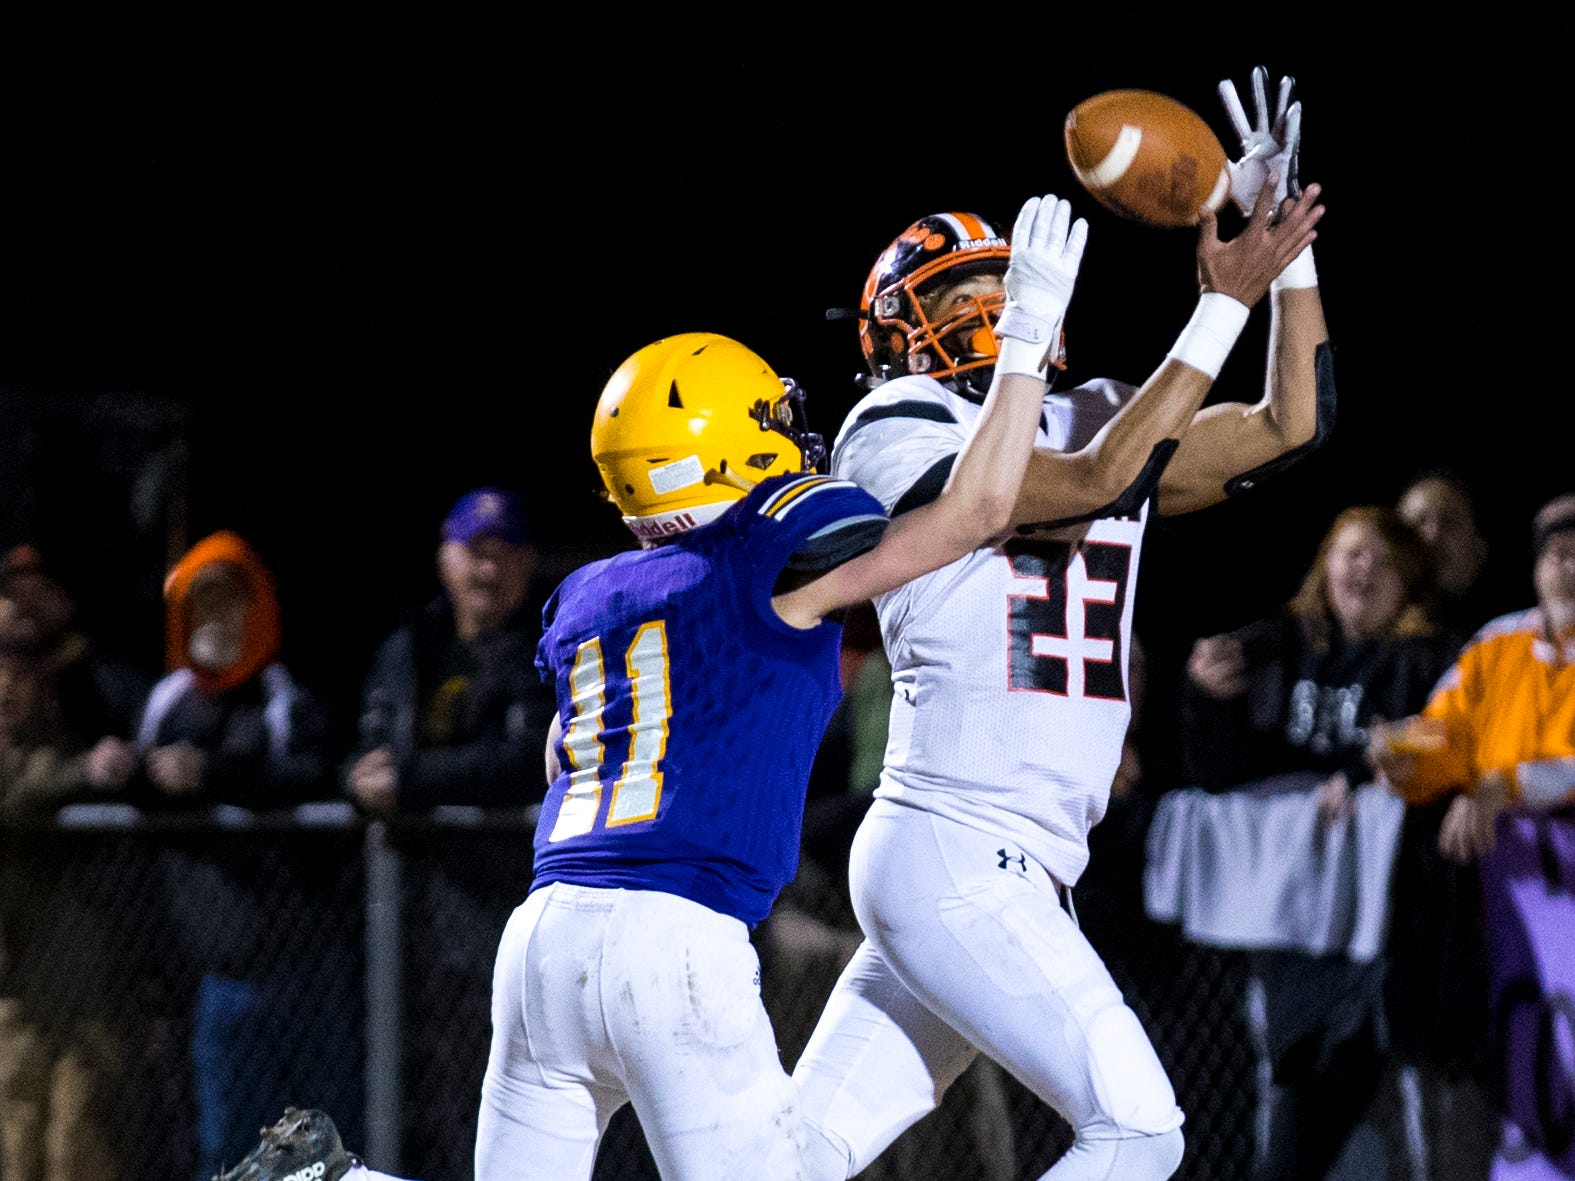 Meigs County's Jon Jon Beeler (23) tries to catch a pass but it is broken up by Trousdale County's Ben Chumley (11) during Trousdale County's game against Meigs County at Jim Satterfield Stadium in Hartsville on Friday, Nov. 23, 2018.